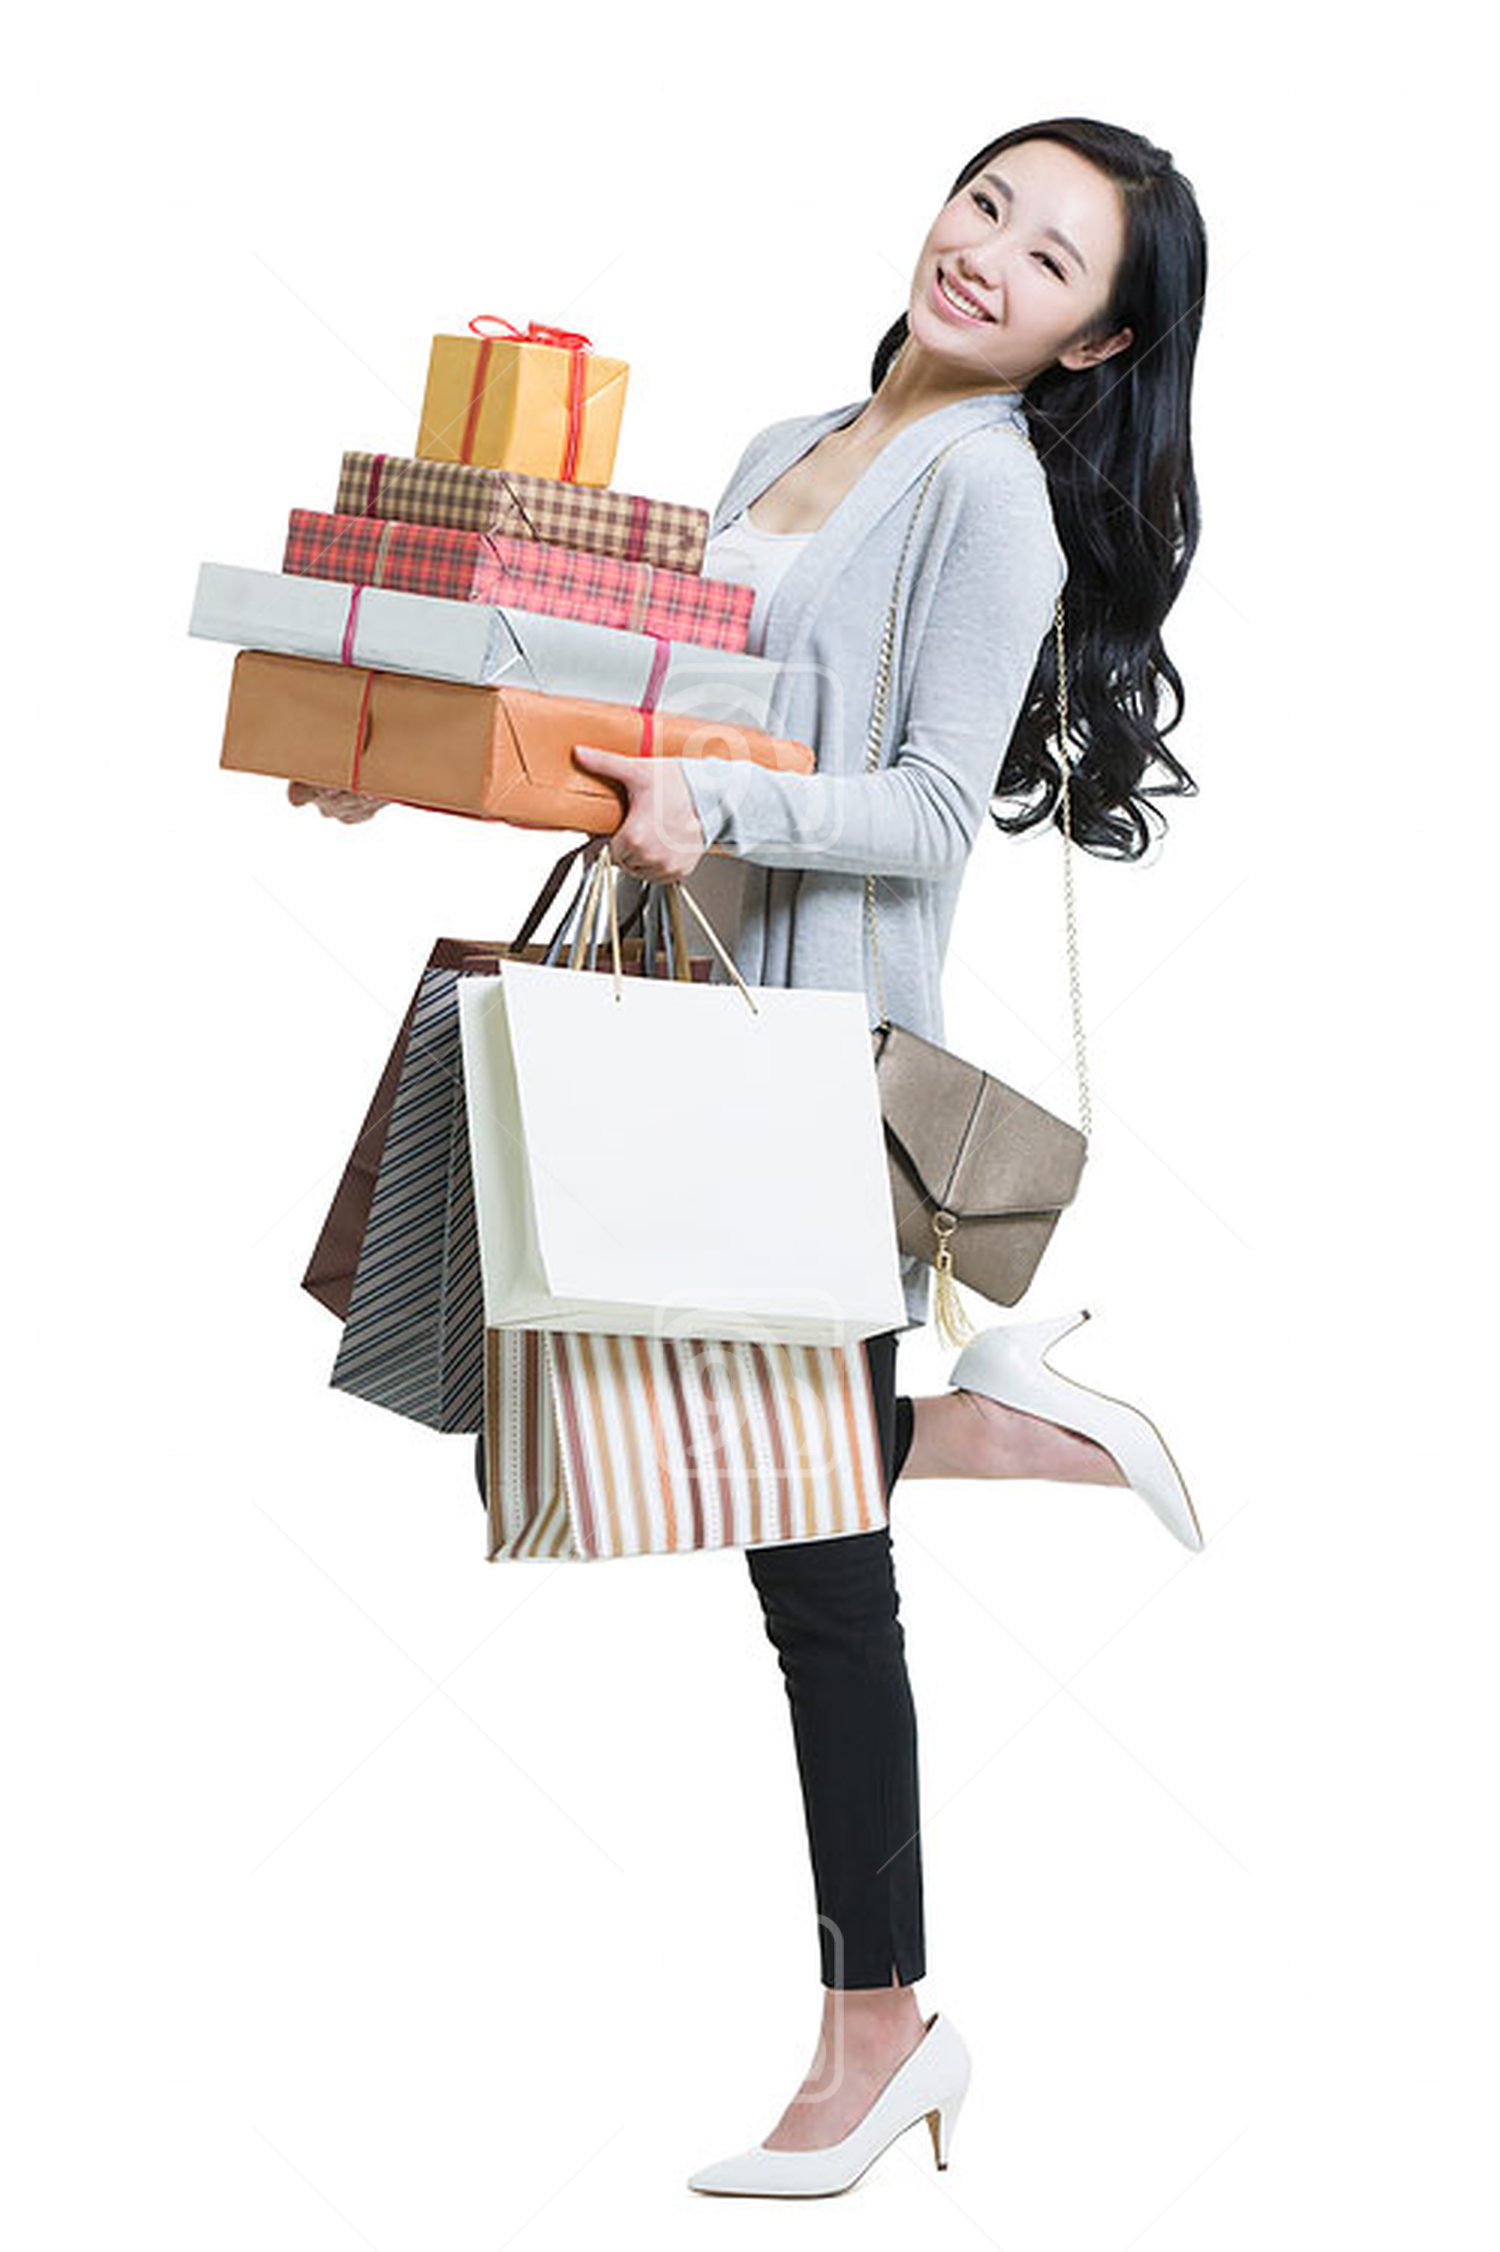 Young Chinese woman shopping with large group of boxes in hand